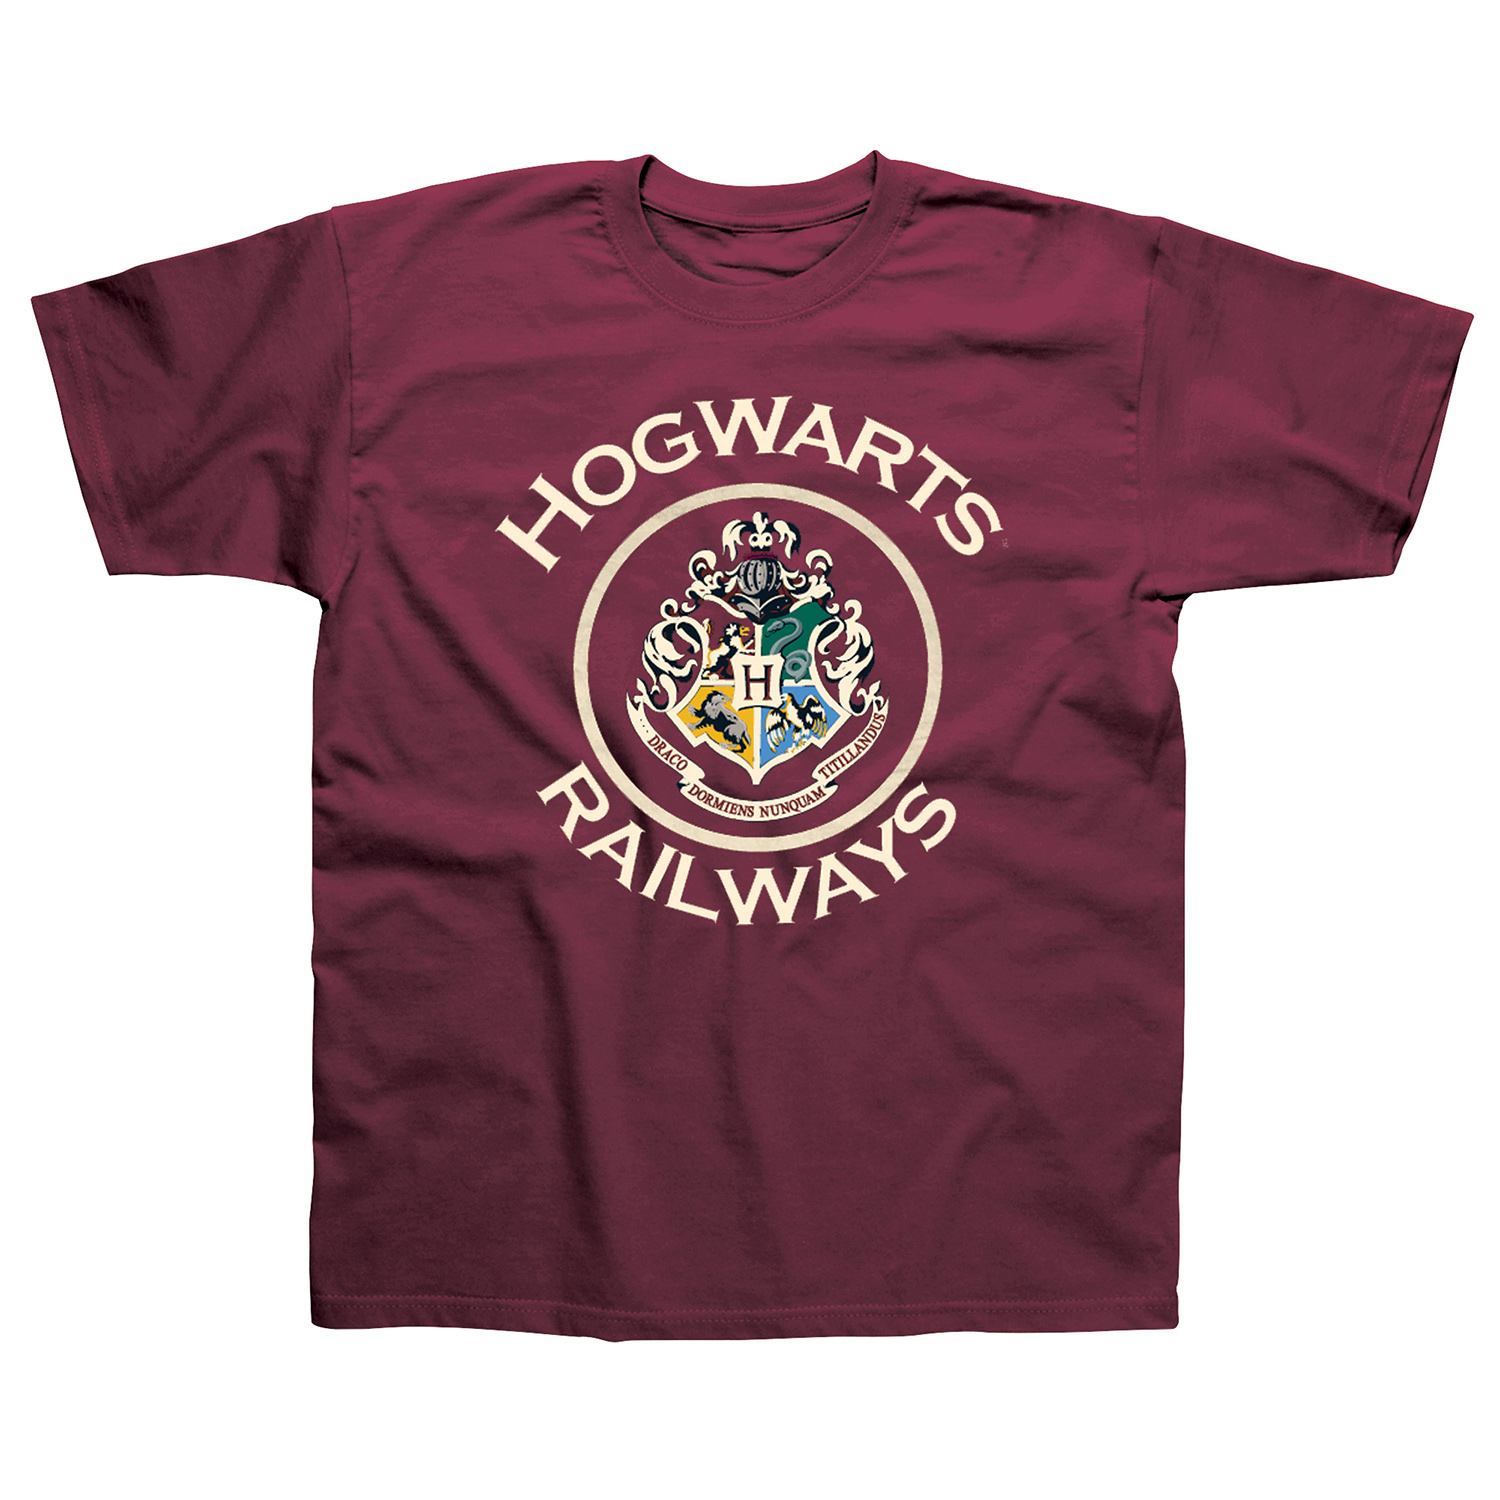 Harry Potter Hogwarts Railway TShirt  L